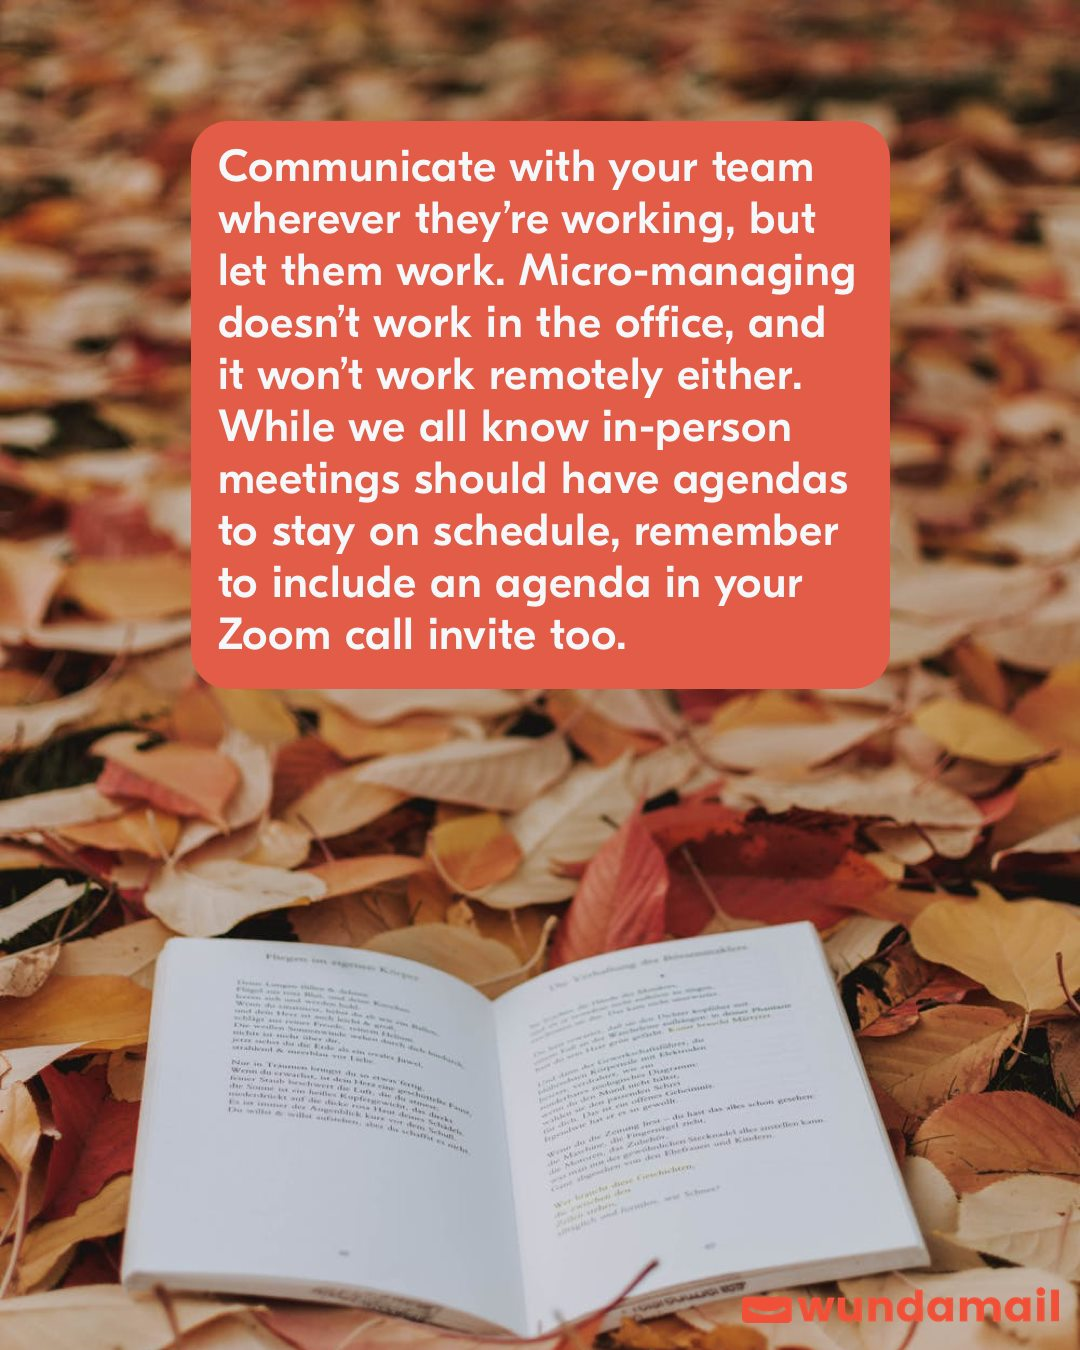 Communicate with your team wherever they're working, but let them work.